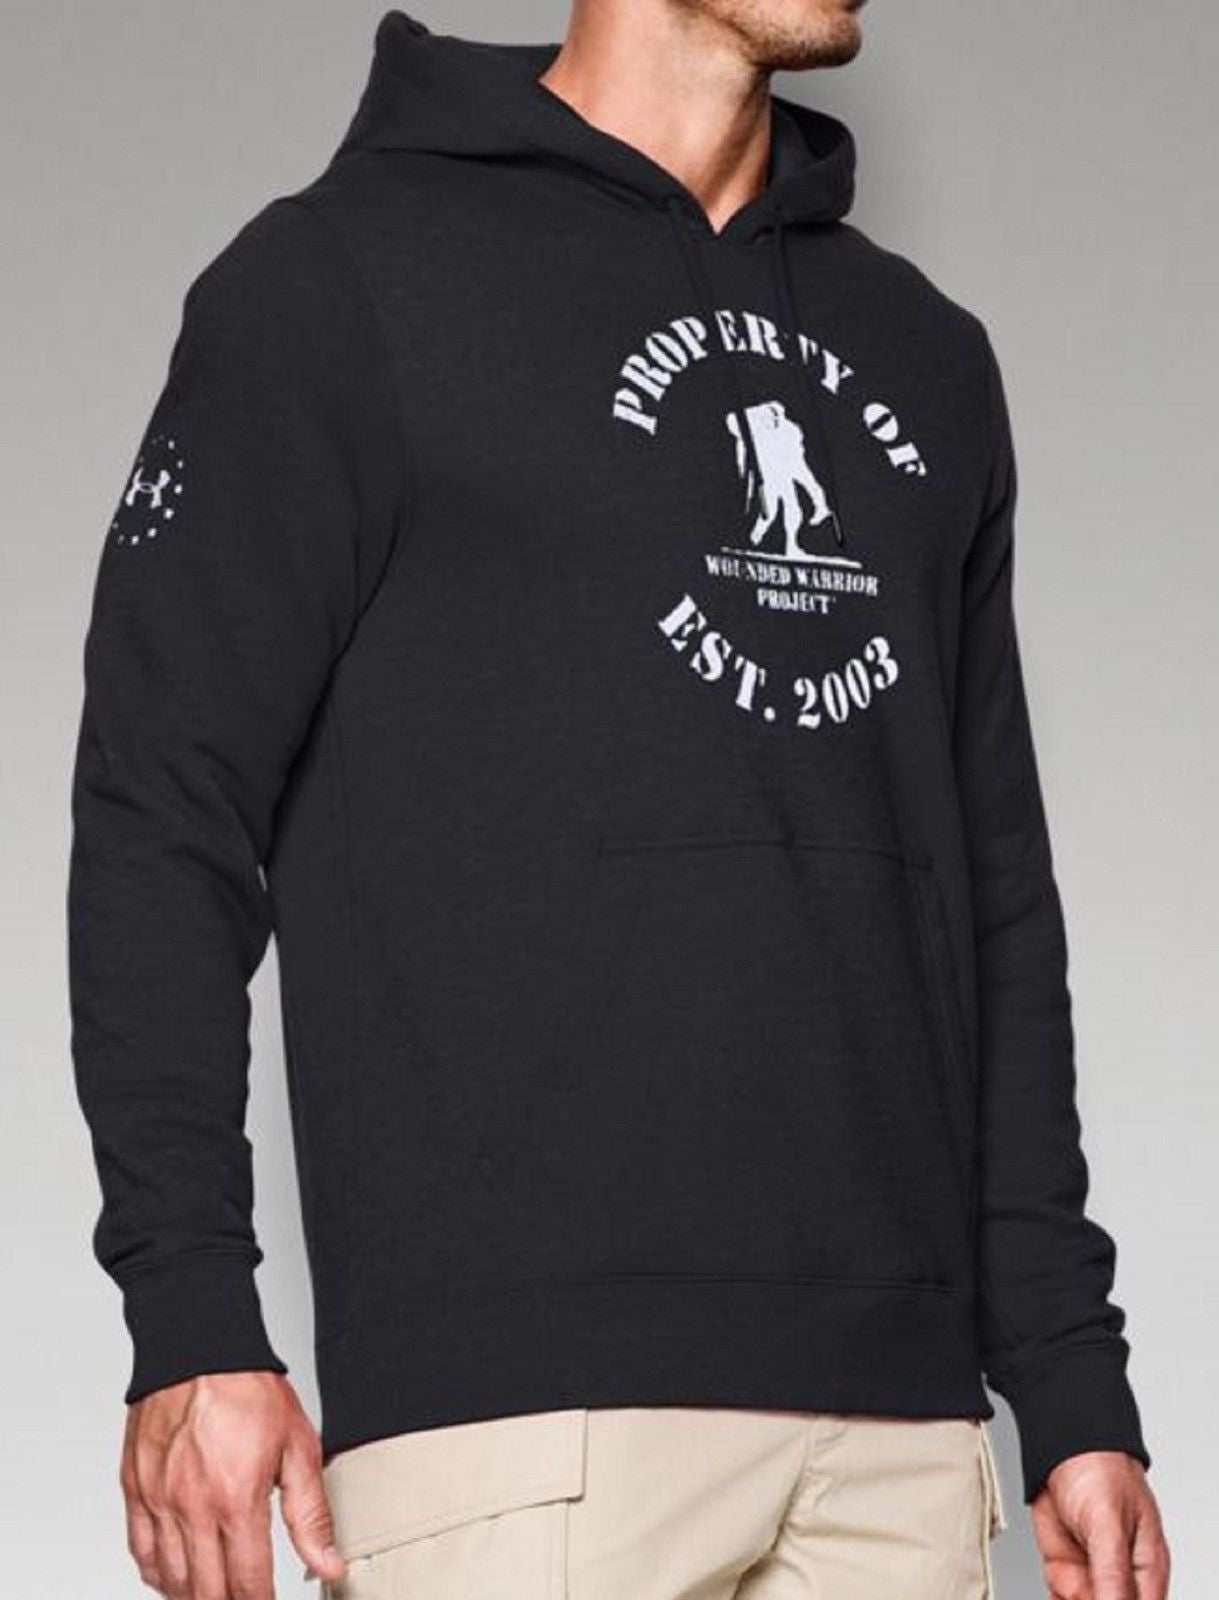 69d73111cb6 ... Under Armour Wounded Warrior Project Hooded Sweatshirt - Property Of WWP  Hoodie ...